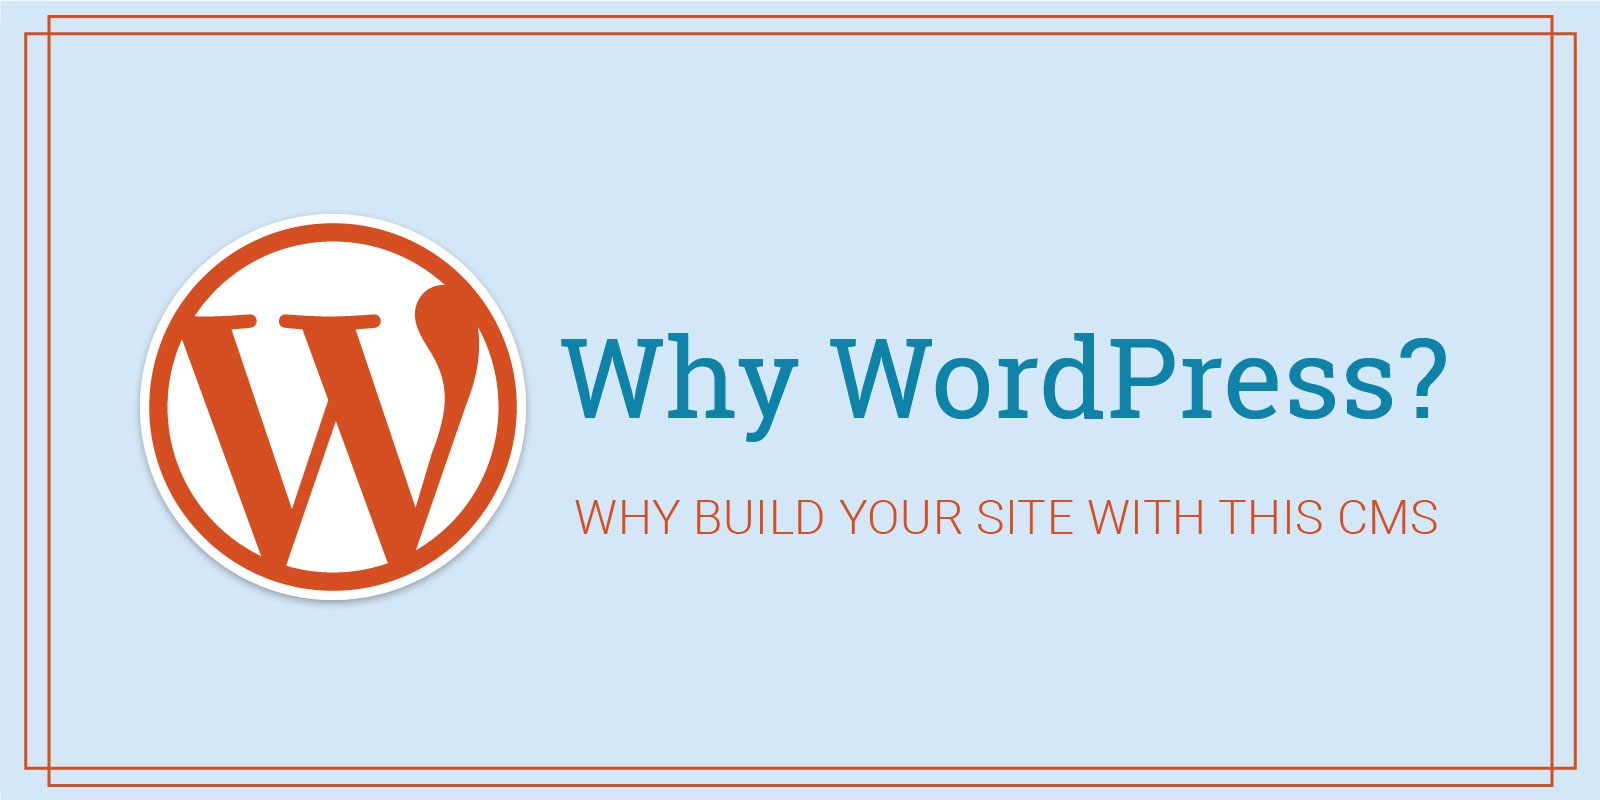 why-wordpress-infographic.jpg